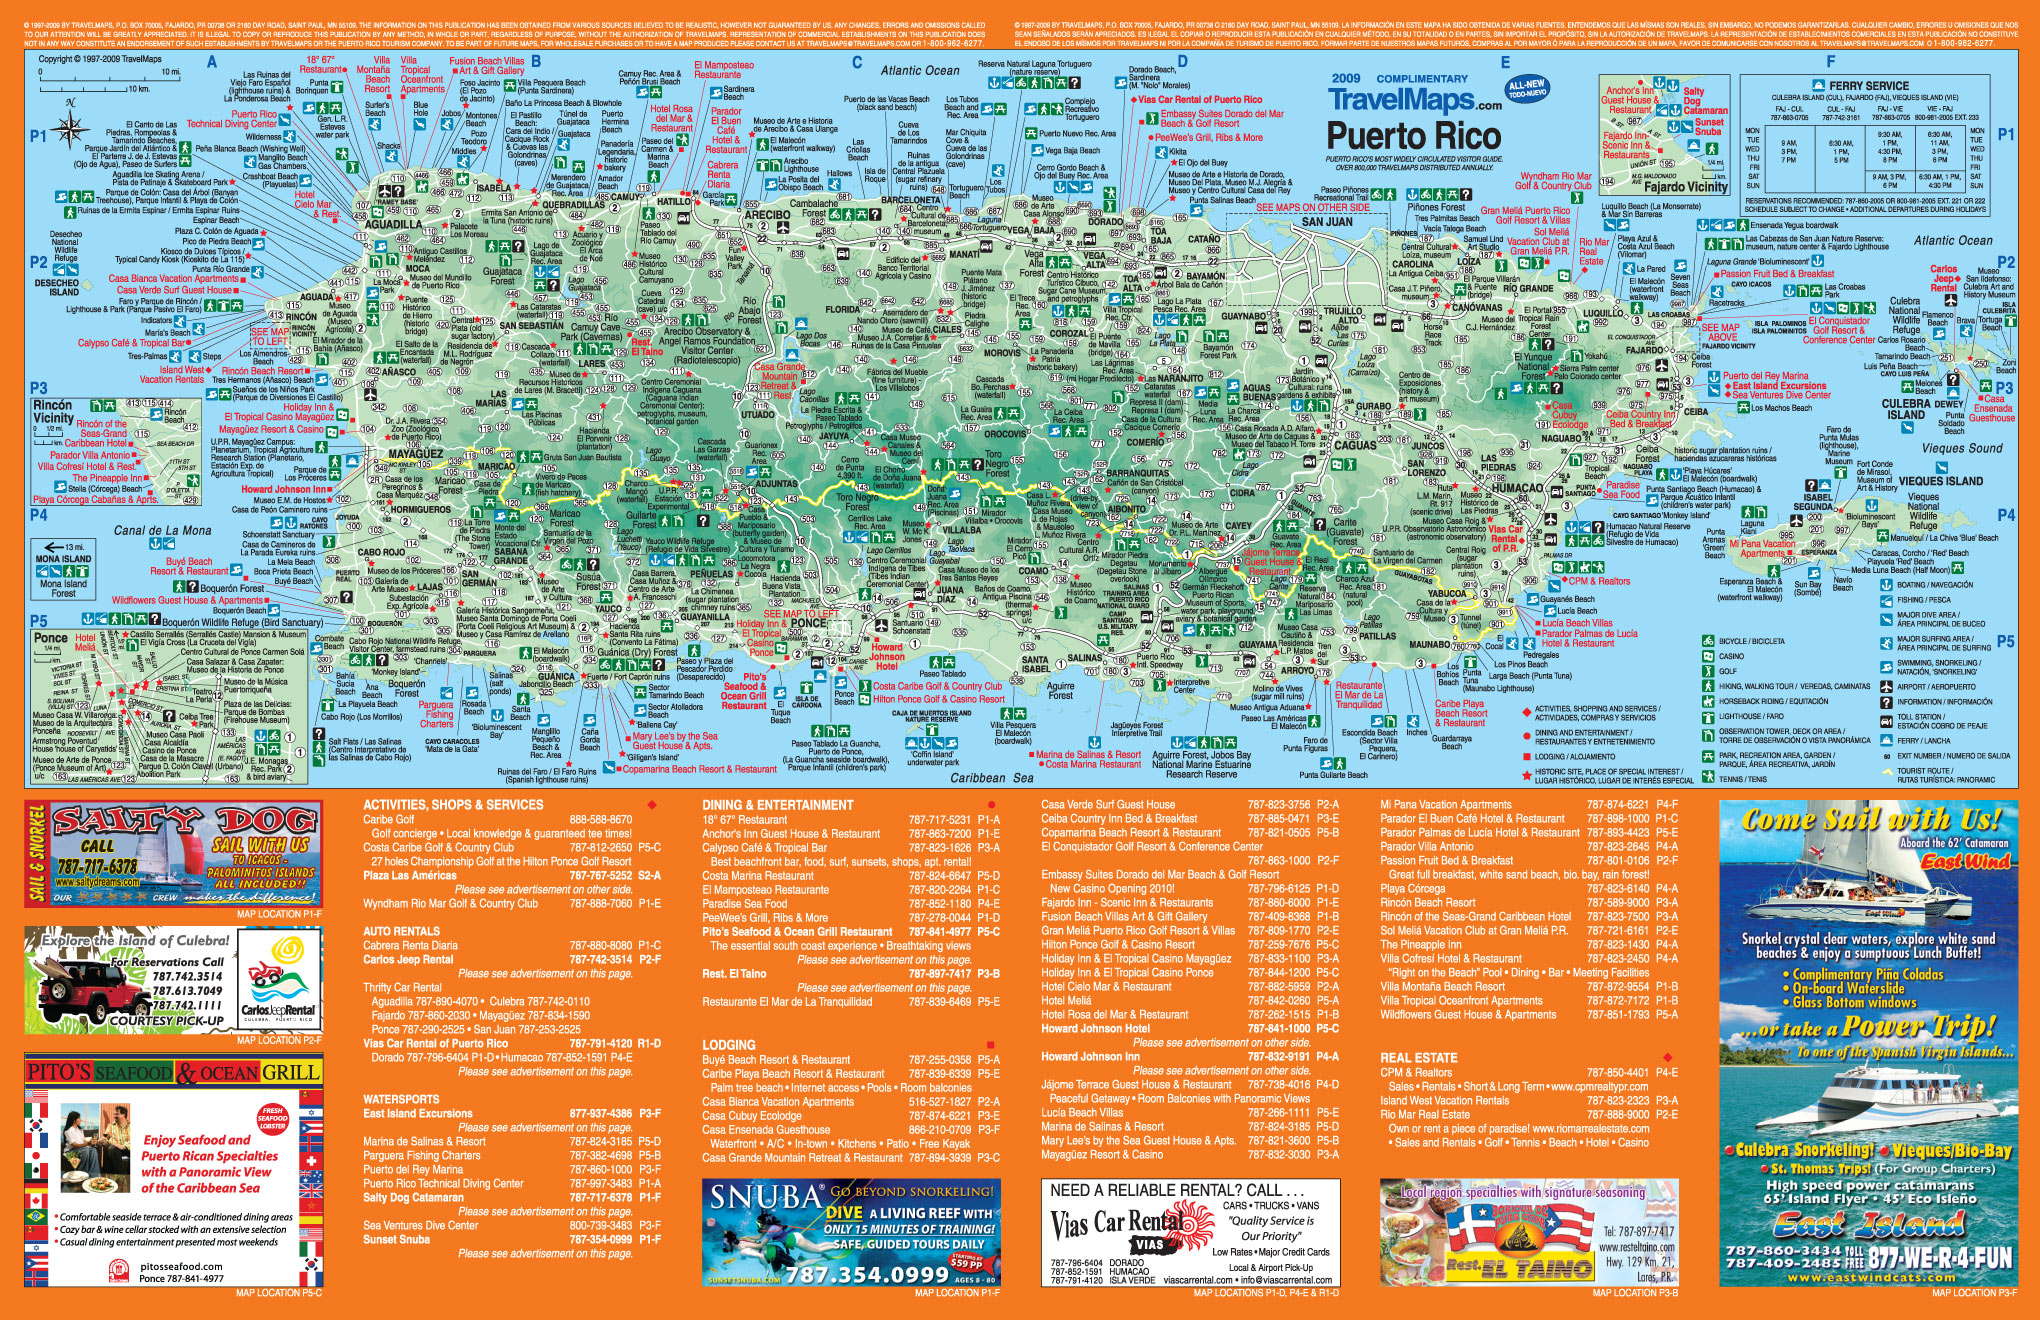 {Puerto Rico Tourist Map Puerto Rico mappery – Puerto Rico Tourist Map